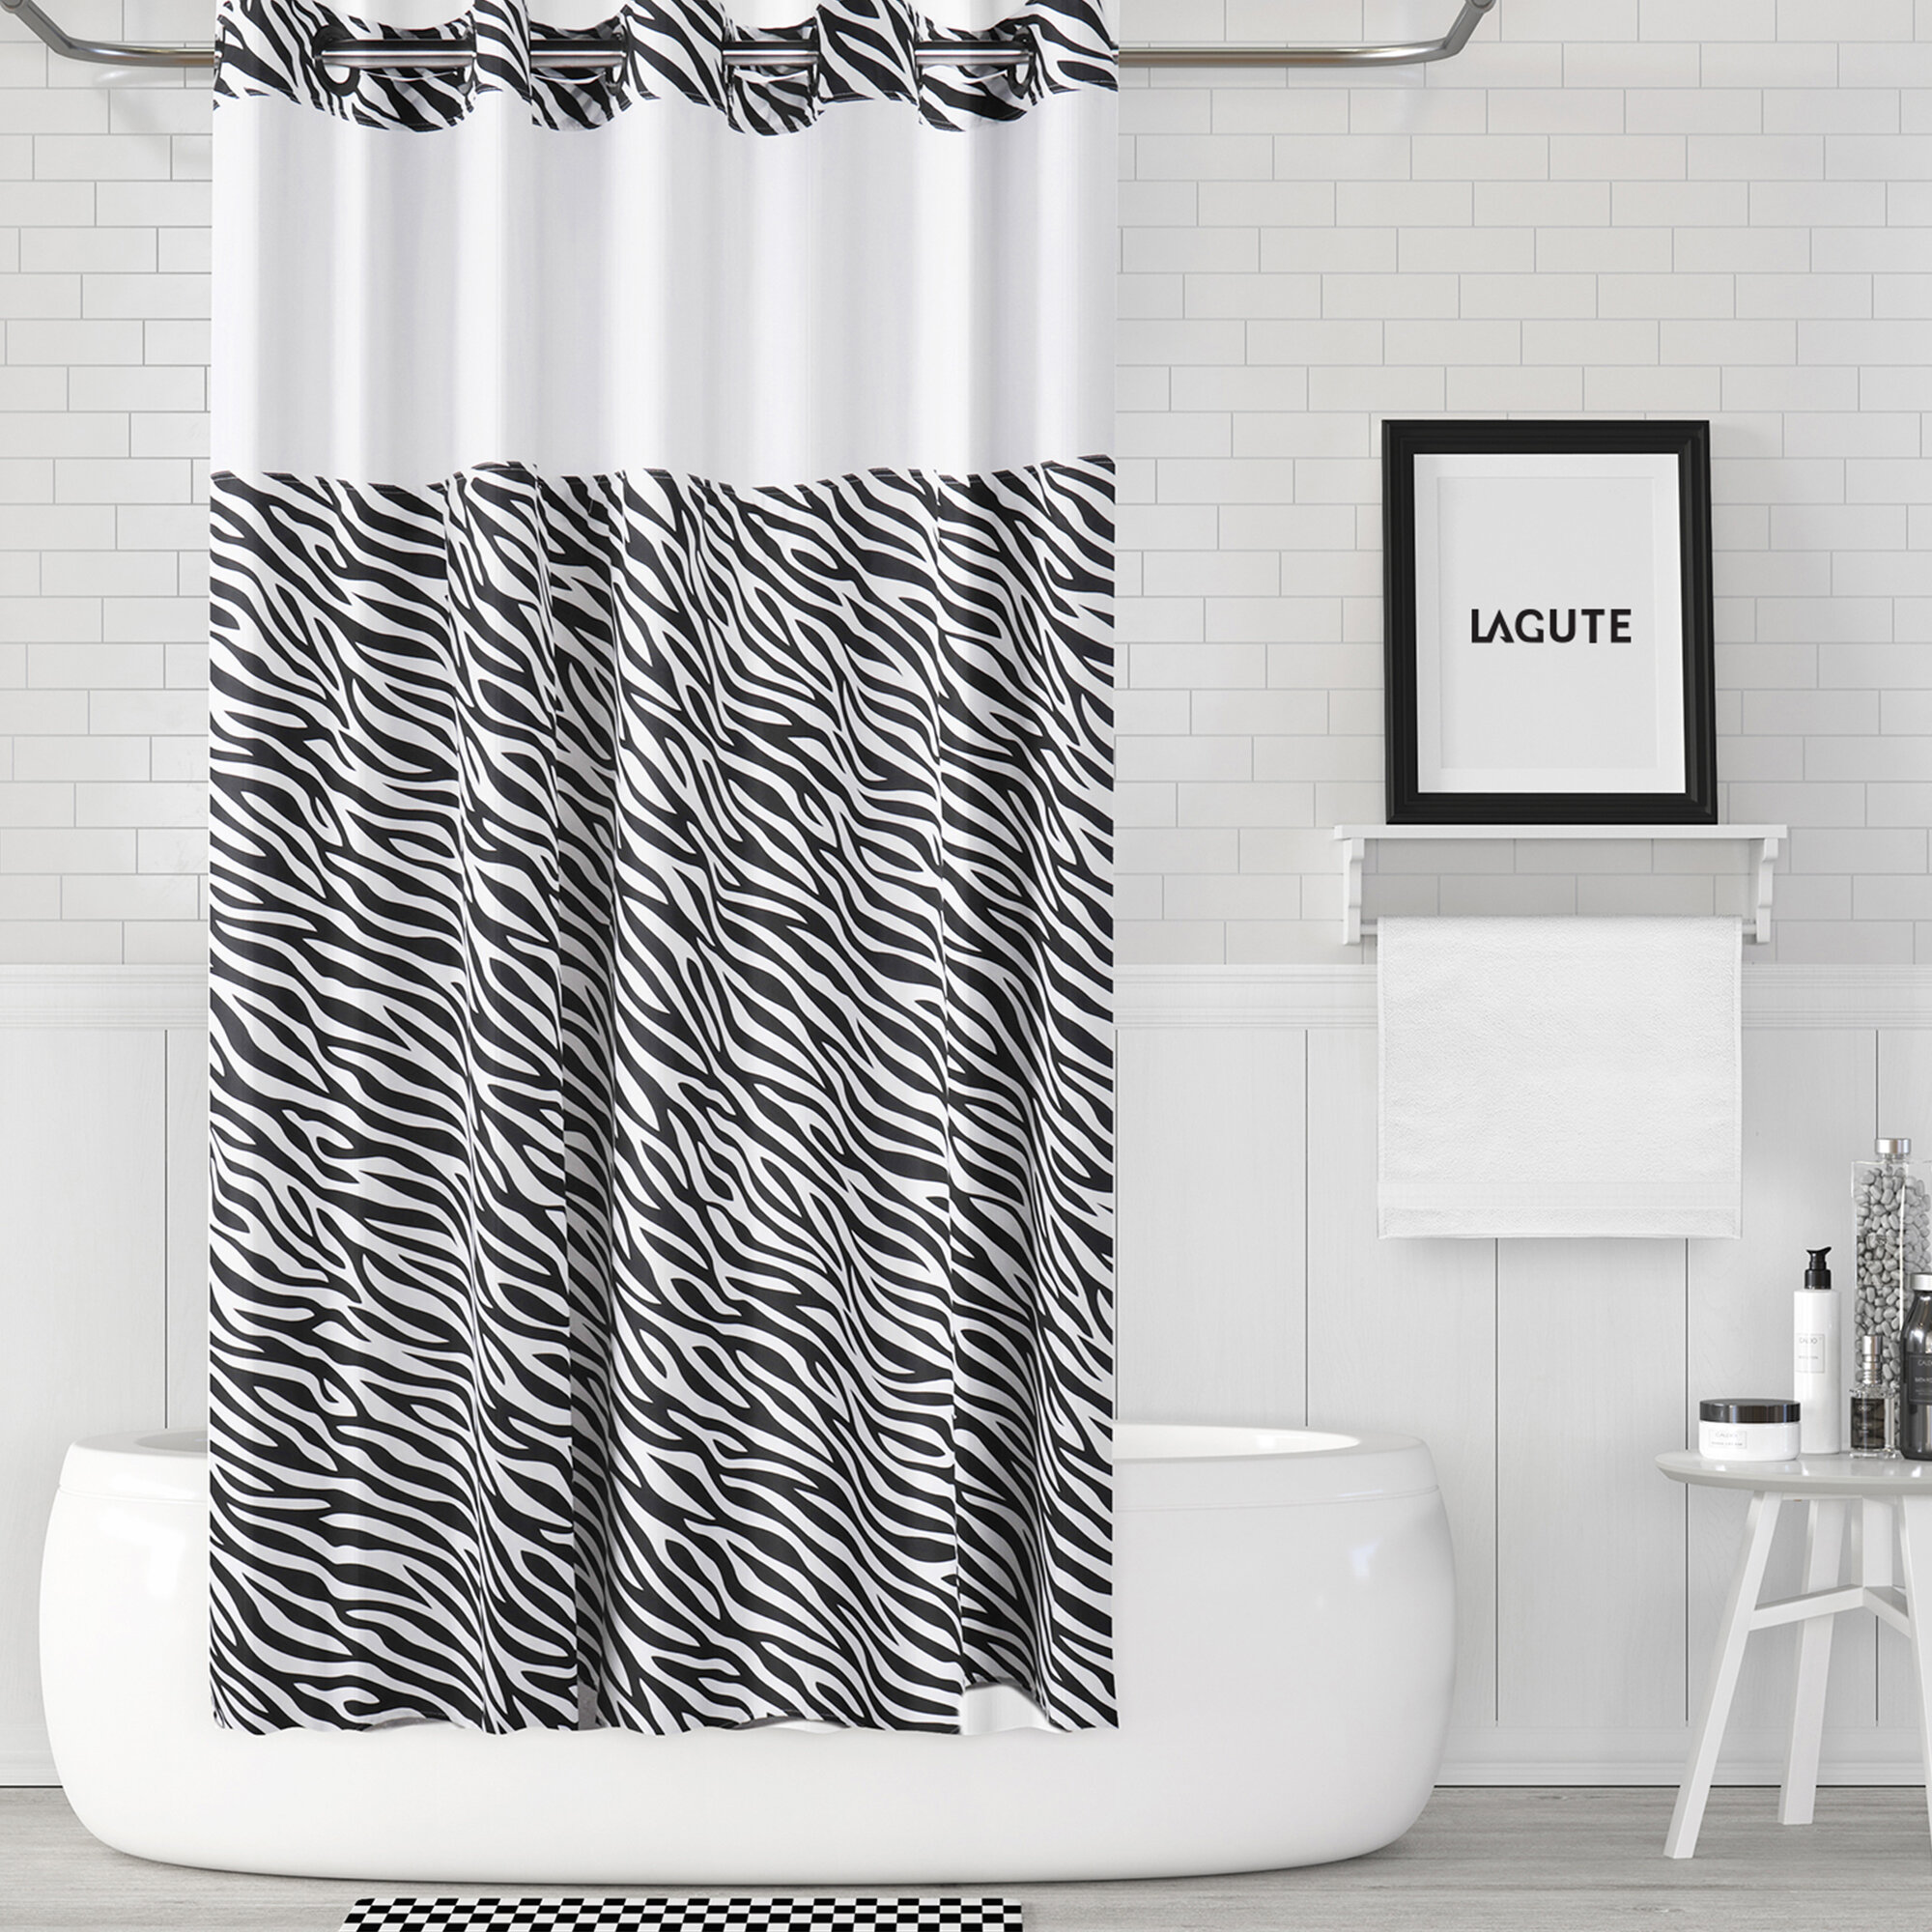 1 Pc Waterproof Two-Zebra Shower Curtain for Home and Bathroom